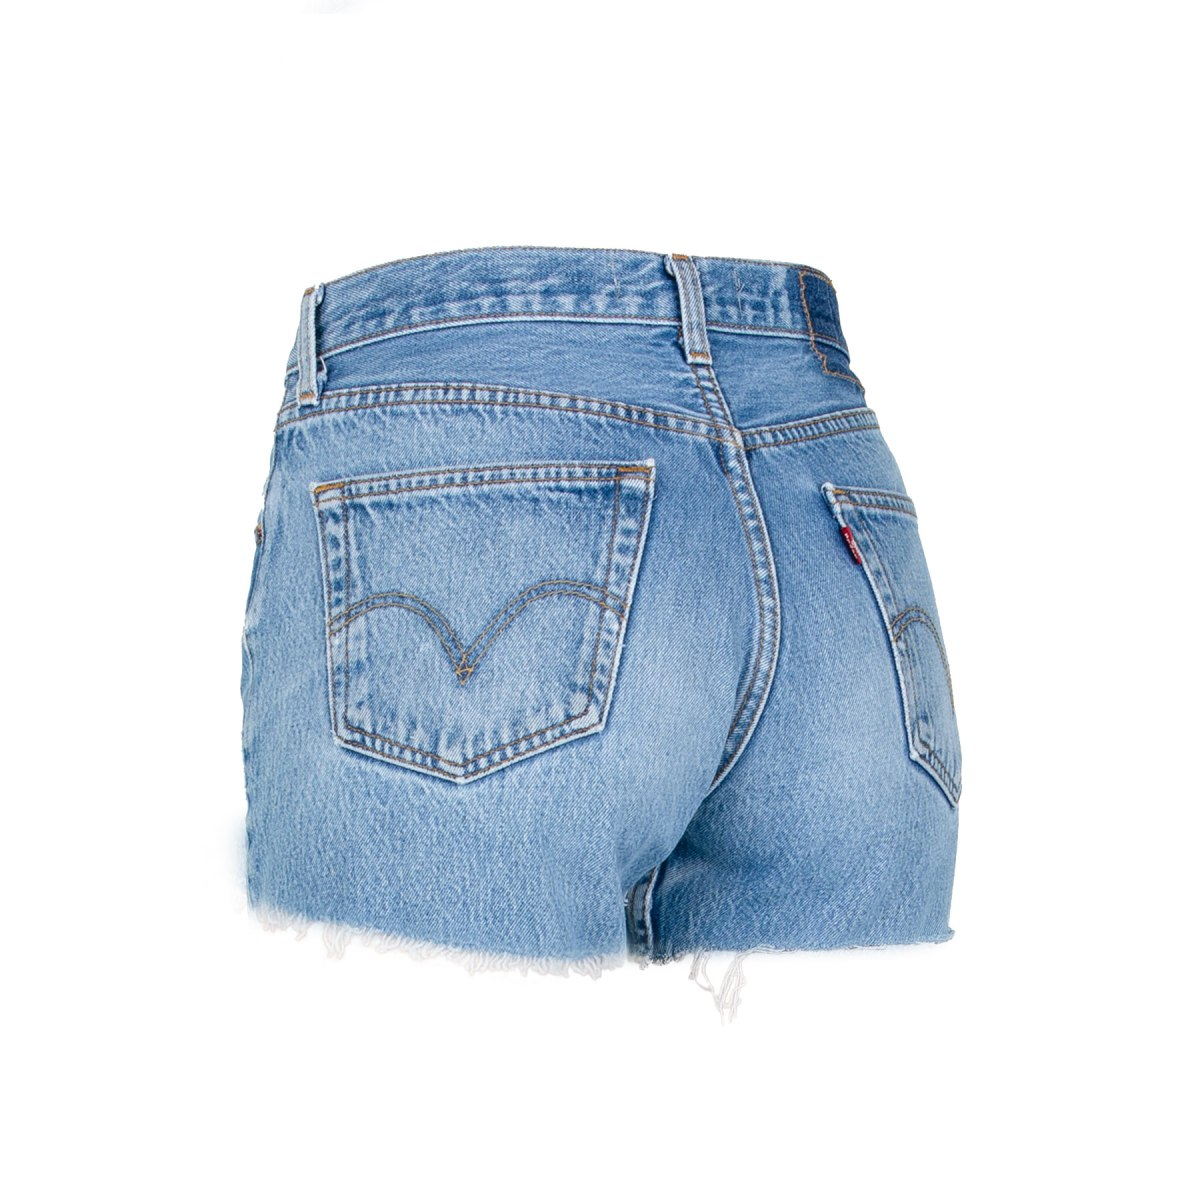 Crossover Shorts by EB Denim, available on ebdenim.com for $155 Hailey Baldwin Shorts Exact Product